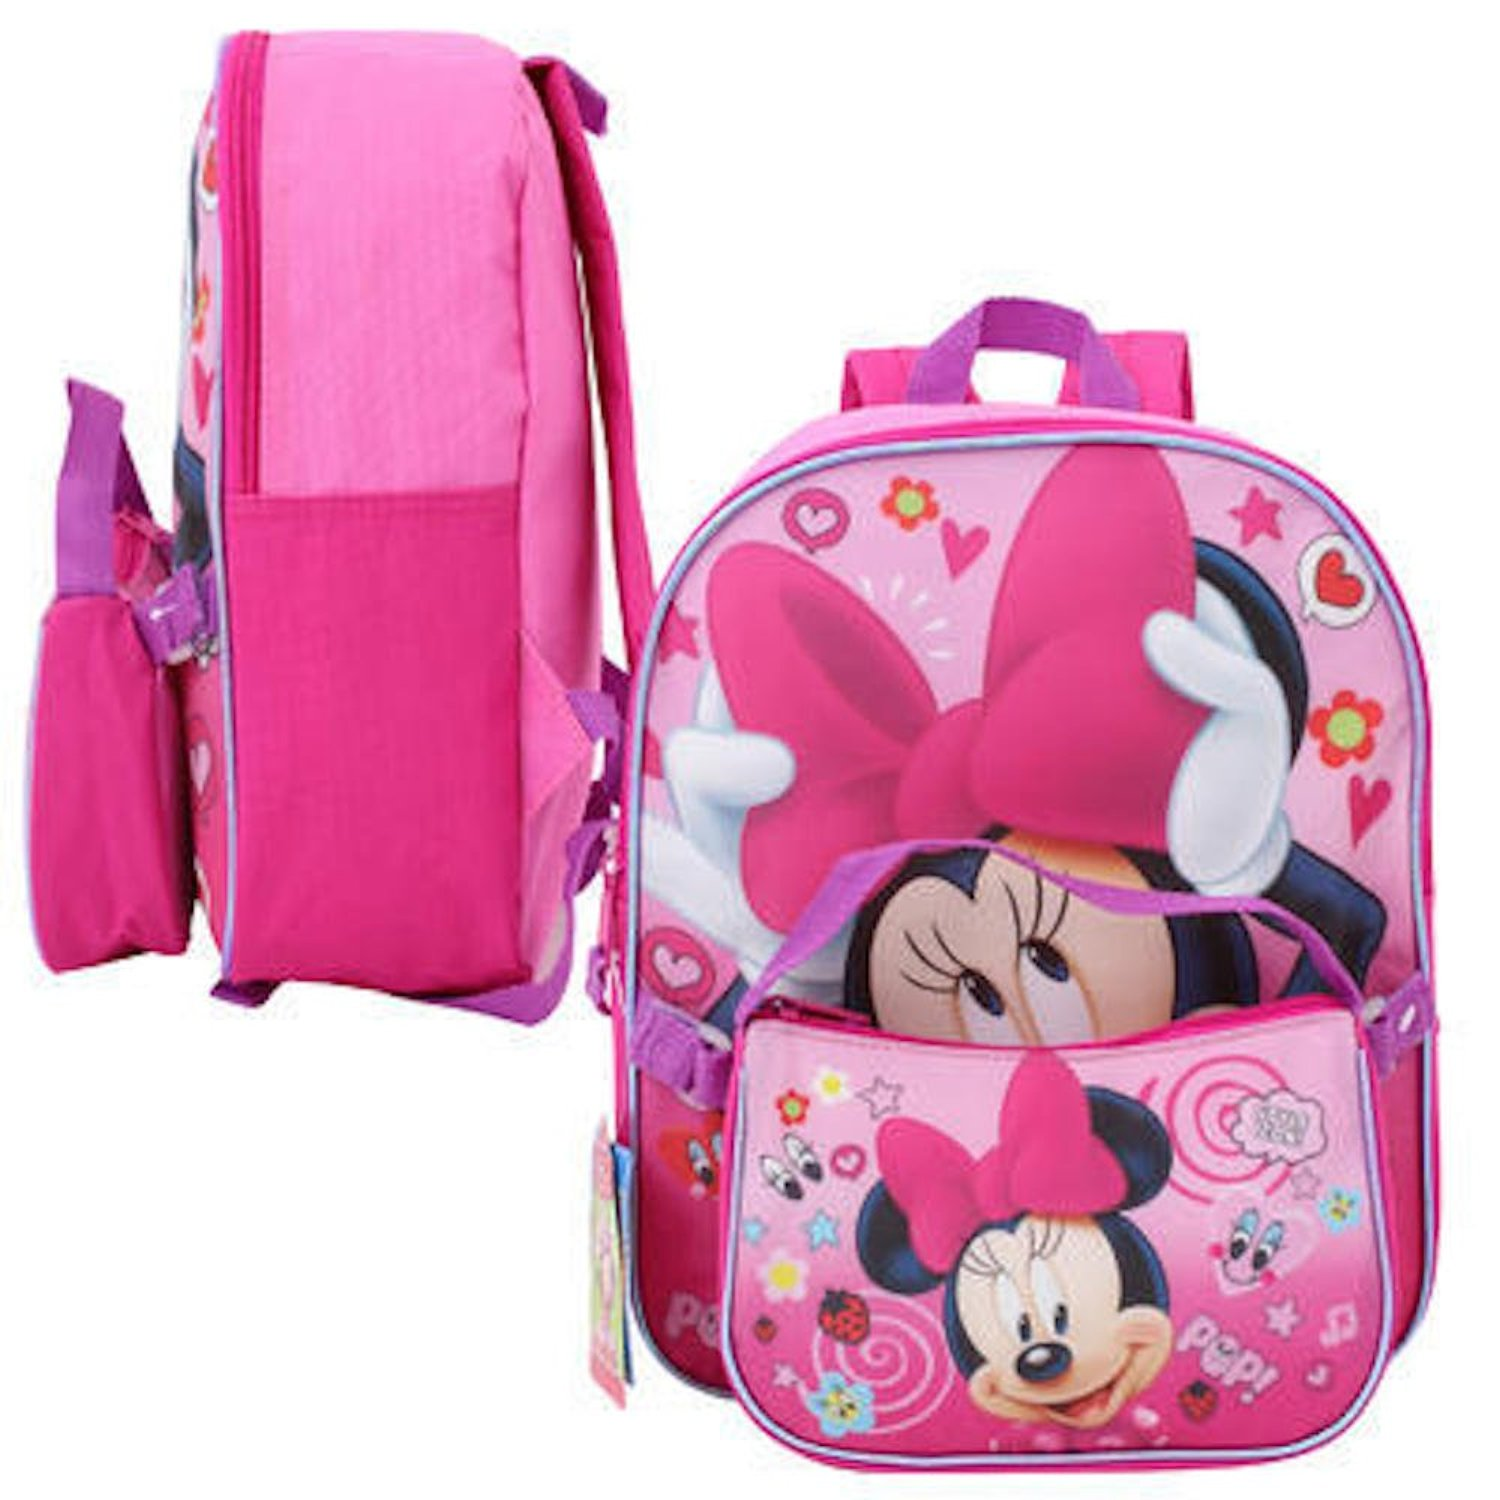 9b3bec26312 Get Quotations · Disney Minnie Mouse 12in Backpack with Detachable bag